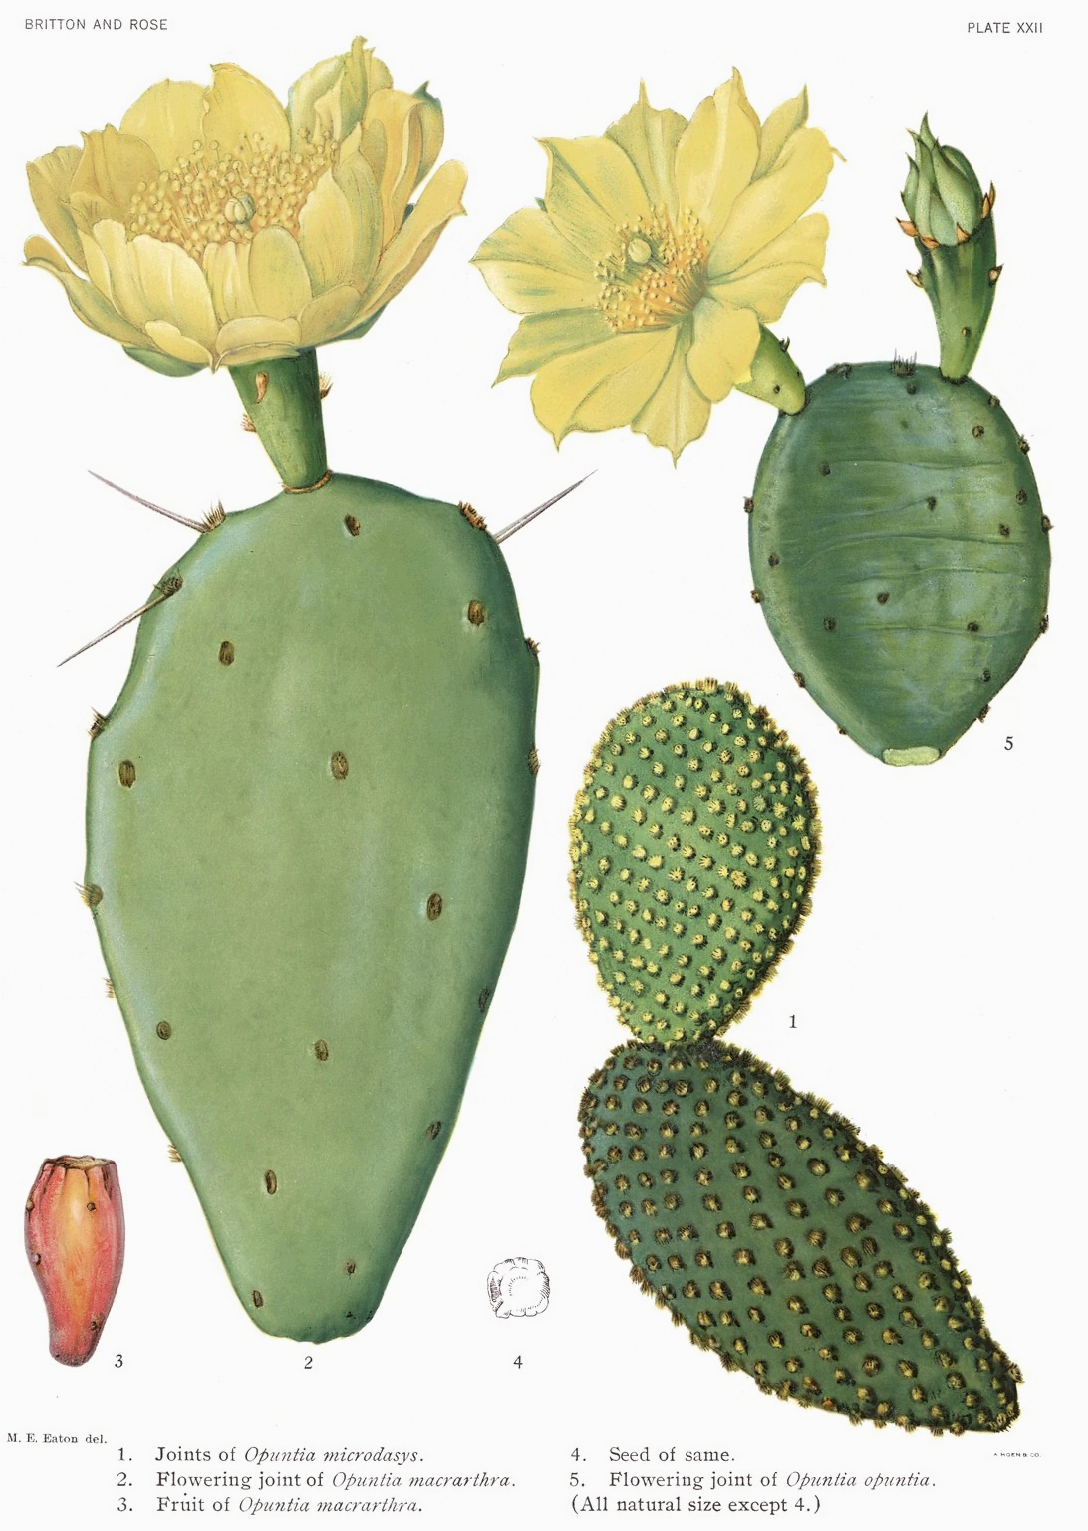 Plant-illustration-of-Erect-Prickly-Pear